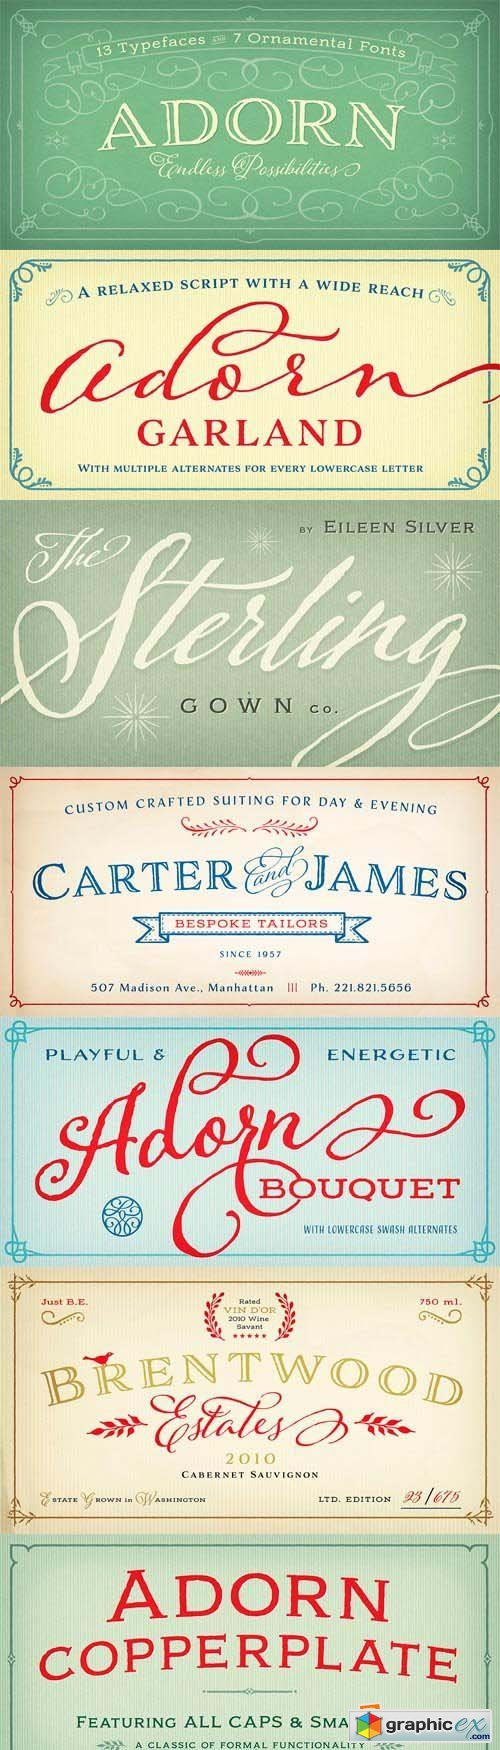 Adorn Font Family - 20 Fonts for $99